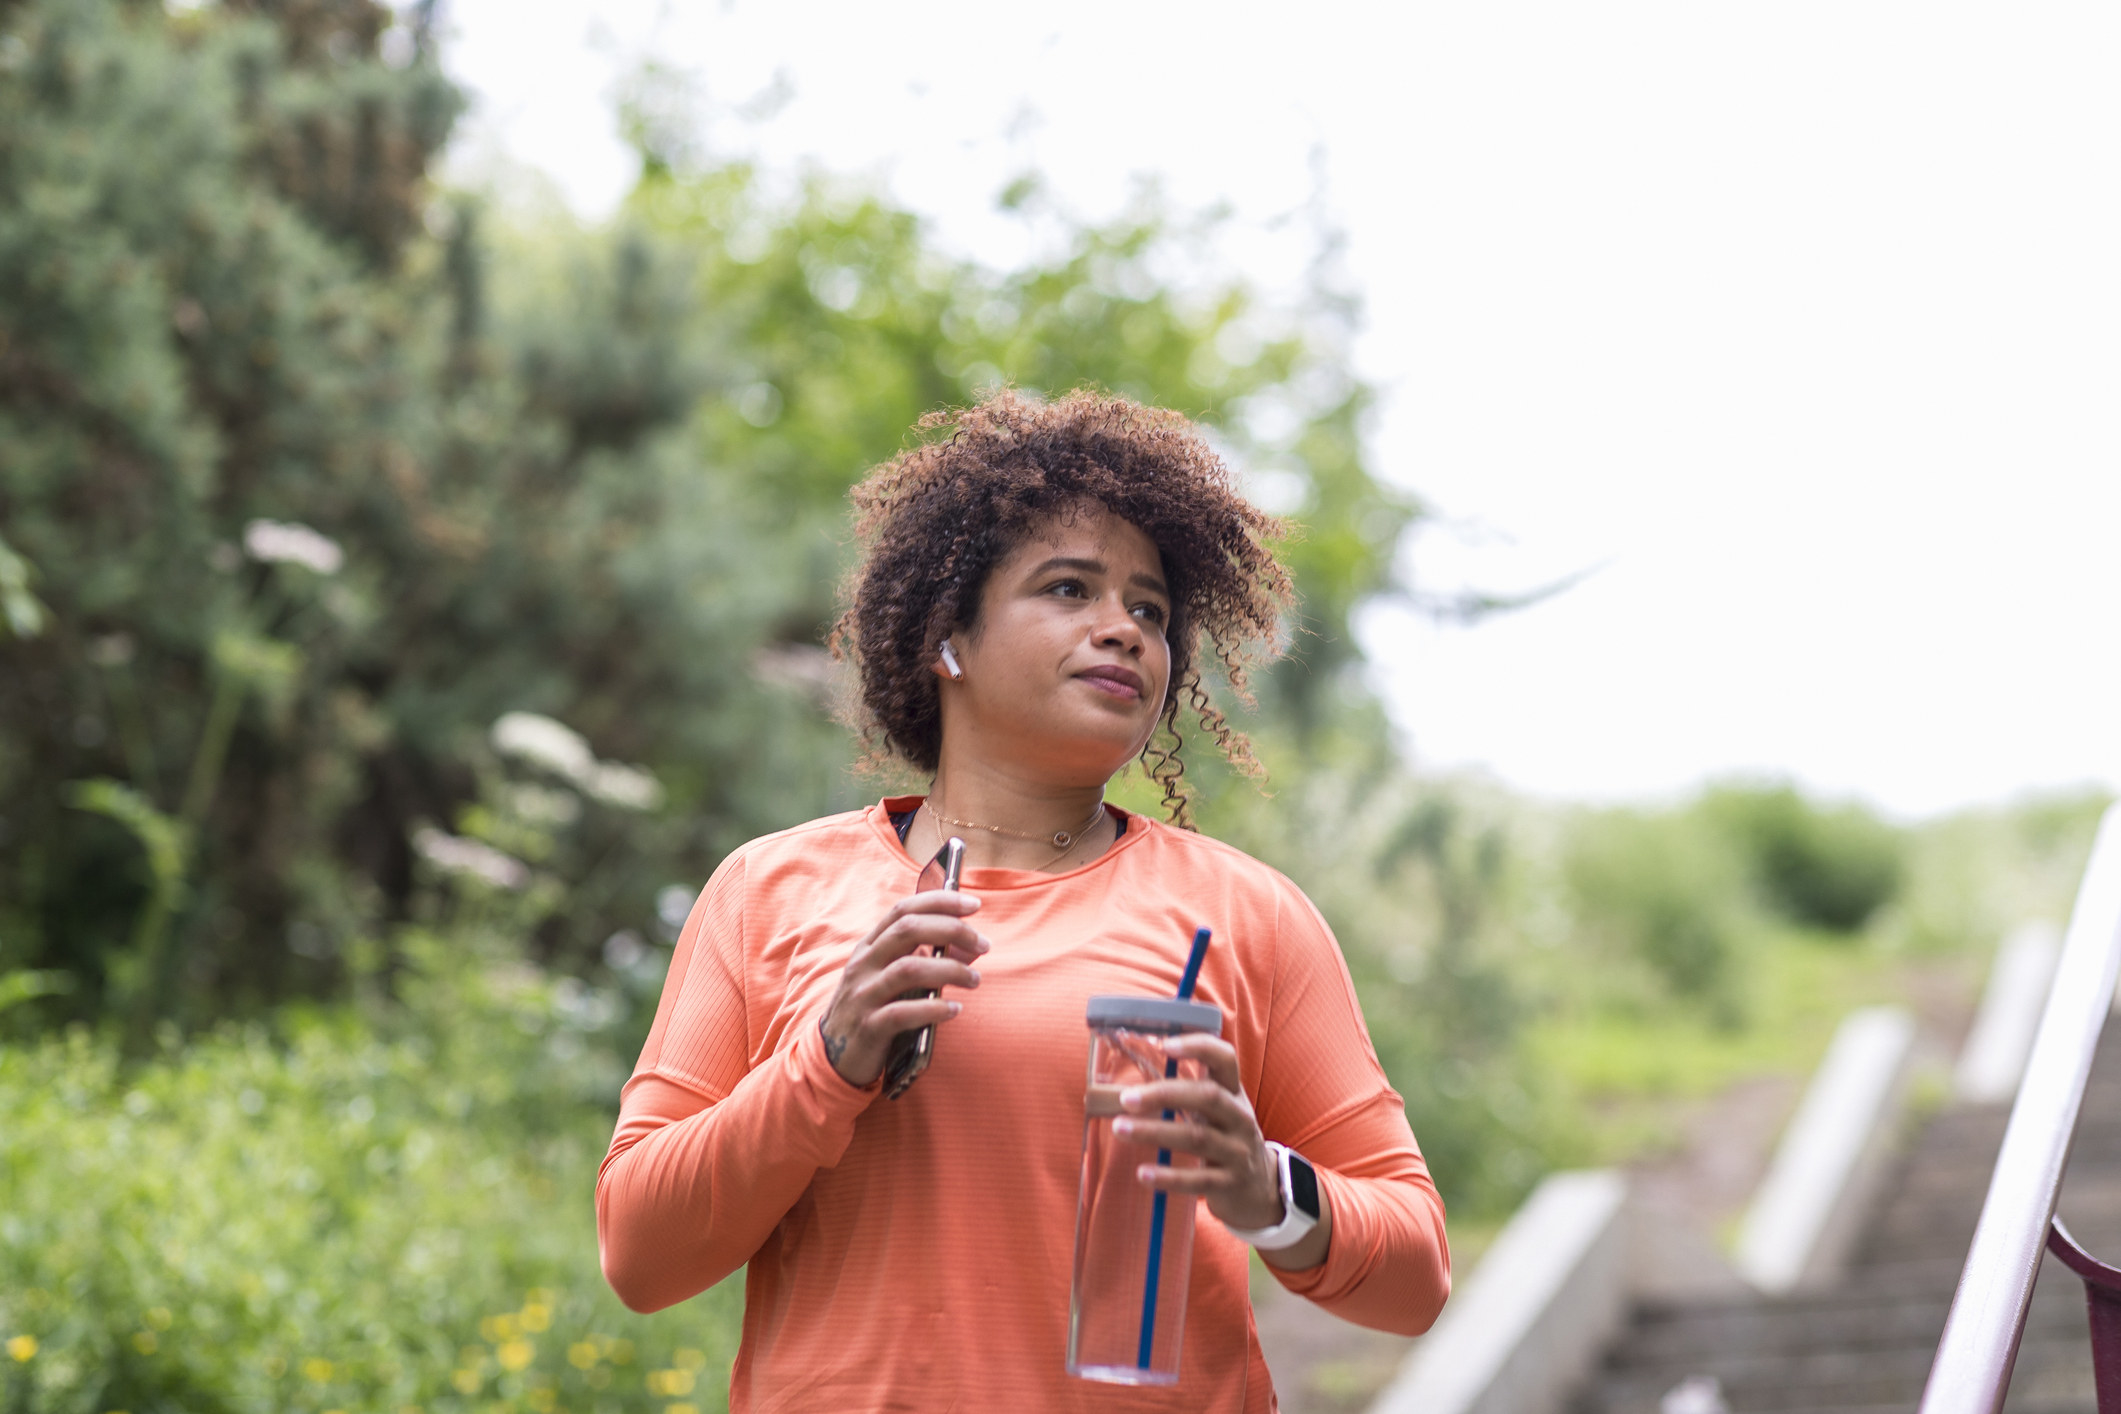 A woman holding a water bottle and her phone as she walks outdoors